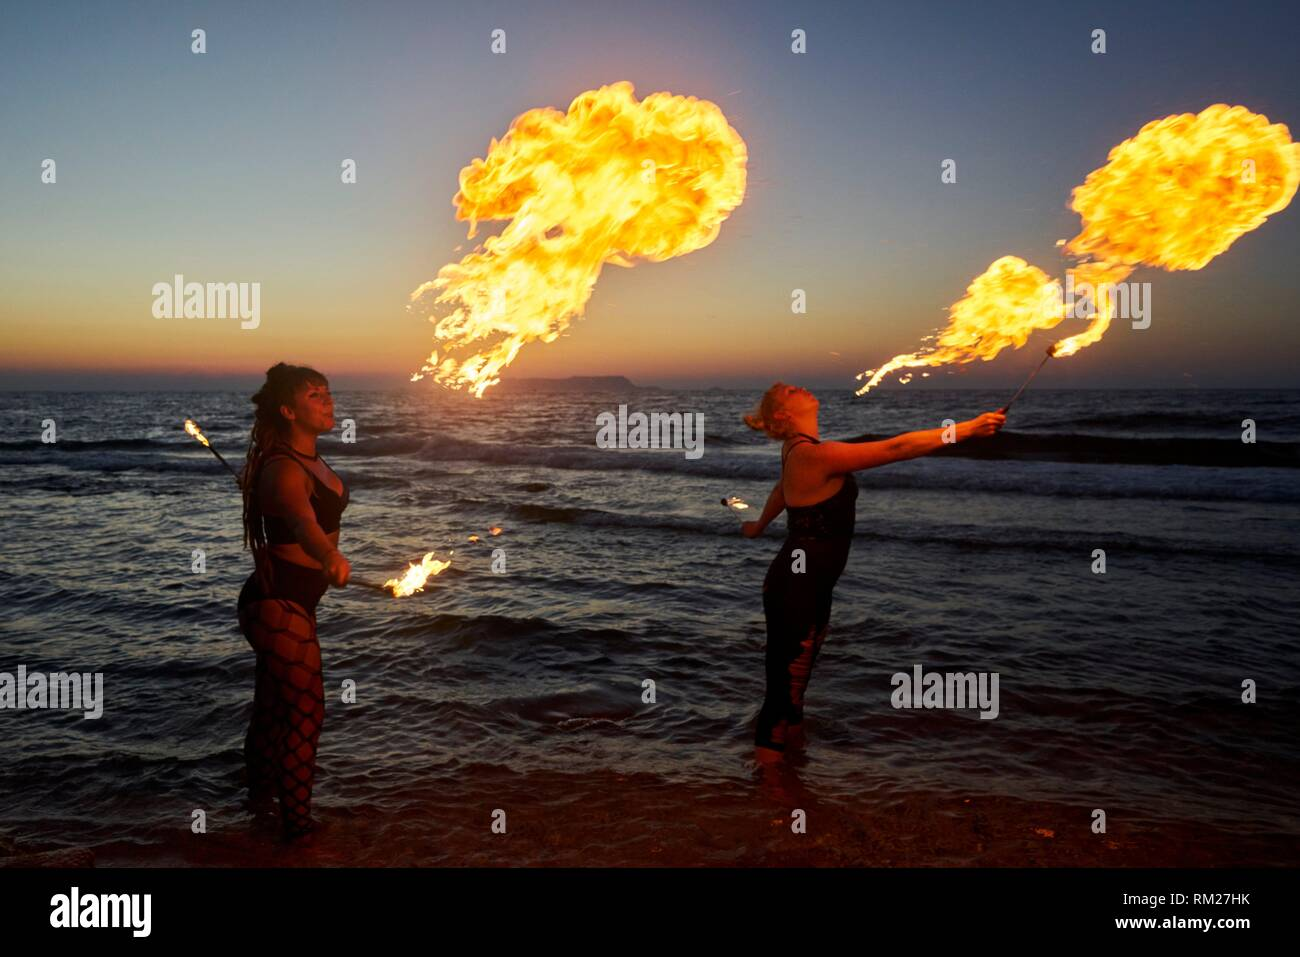 fire-breathing , beach, standing in sea water, in holiday destination Chersonissos, Crete, Greece. - Stock Image